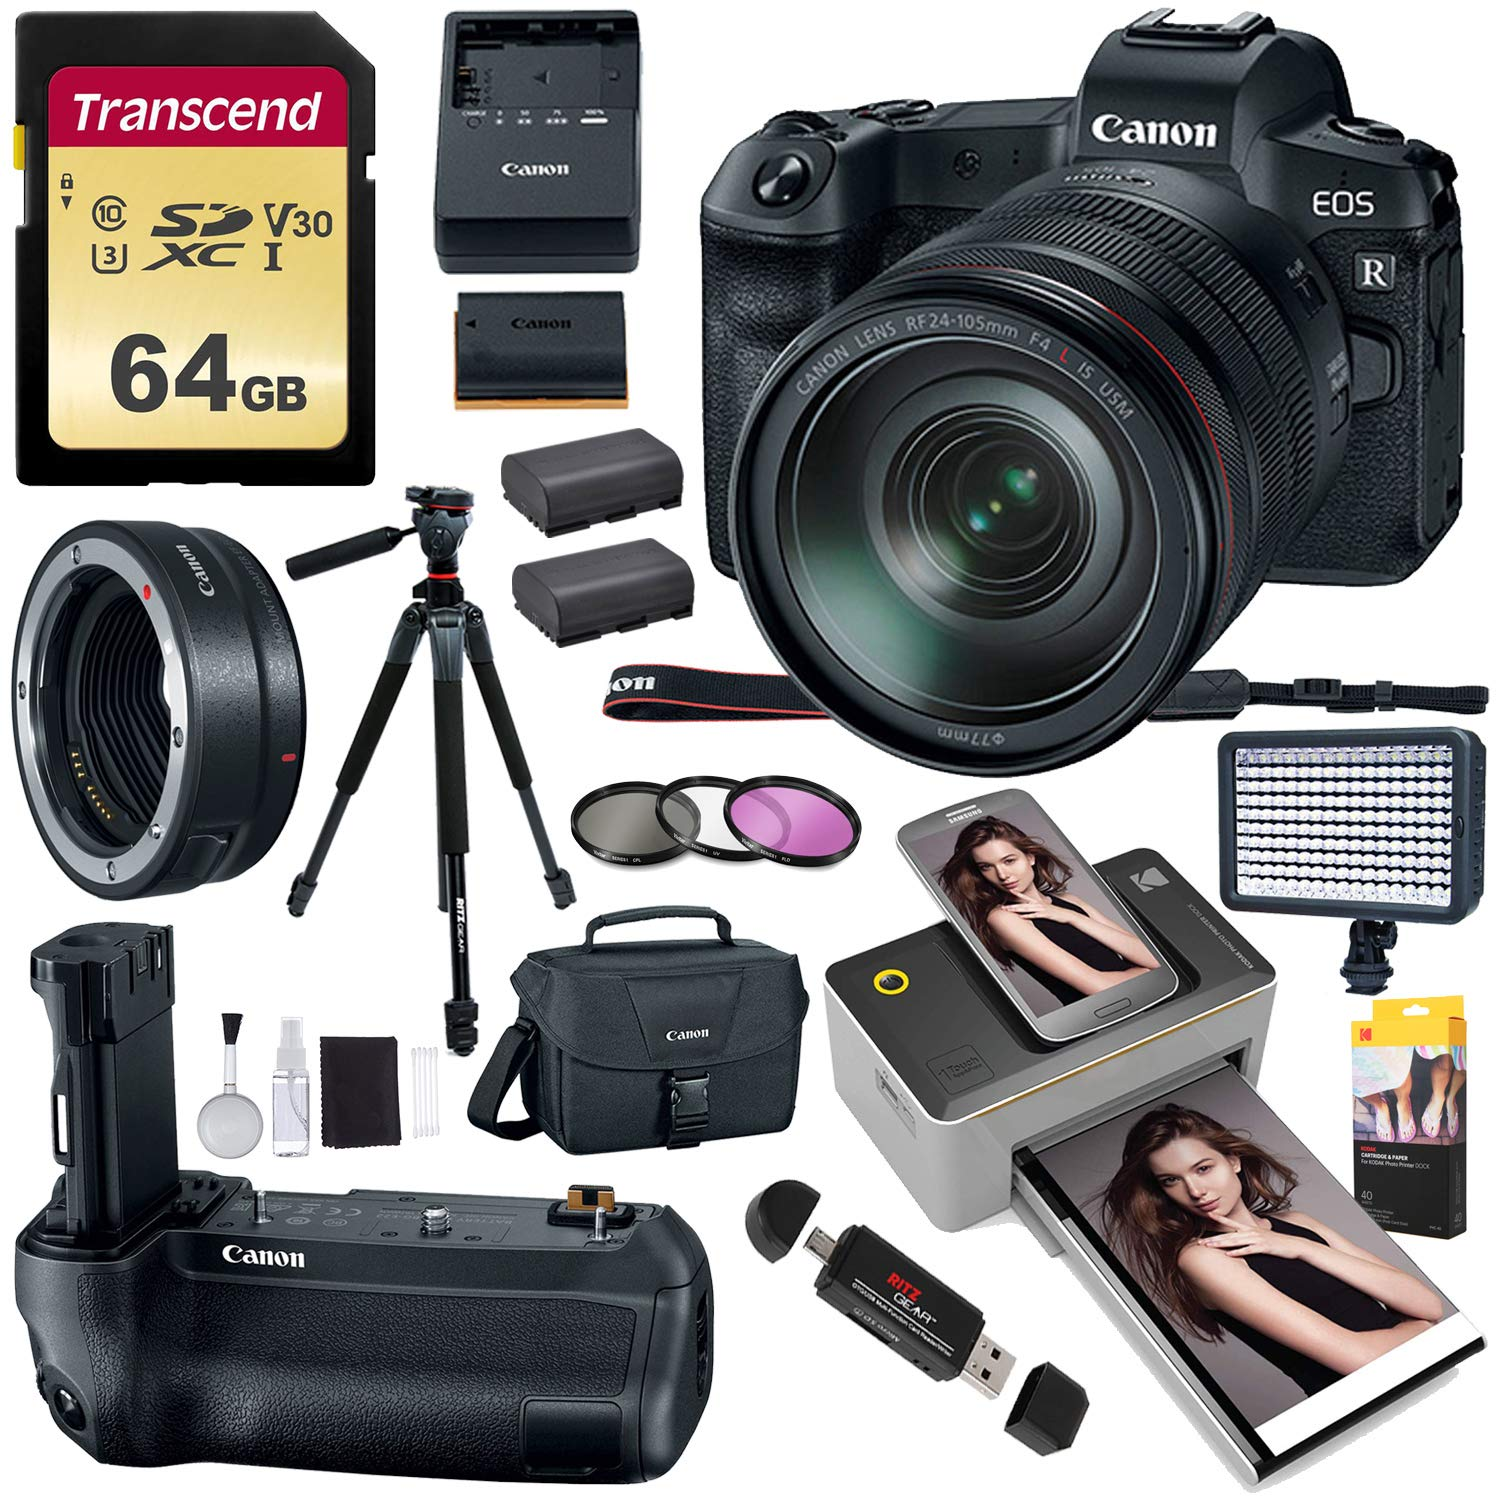 Canon EOS R Mirrorless Full Frame Digital Camera w/RF 24-105mm USM Kit,  Battery Grip, Lens Mount Converter, Kodak Mini 2 Printer, LED Video Light,